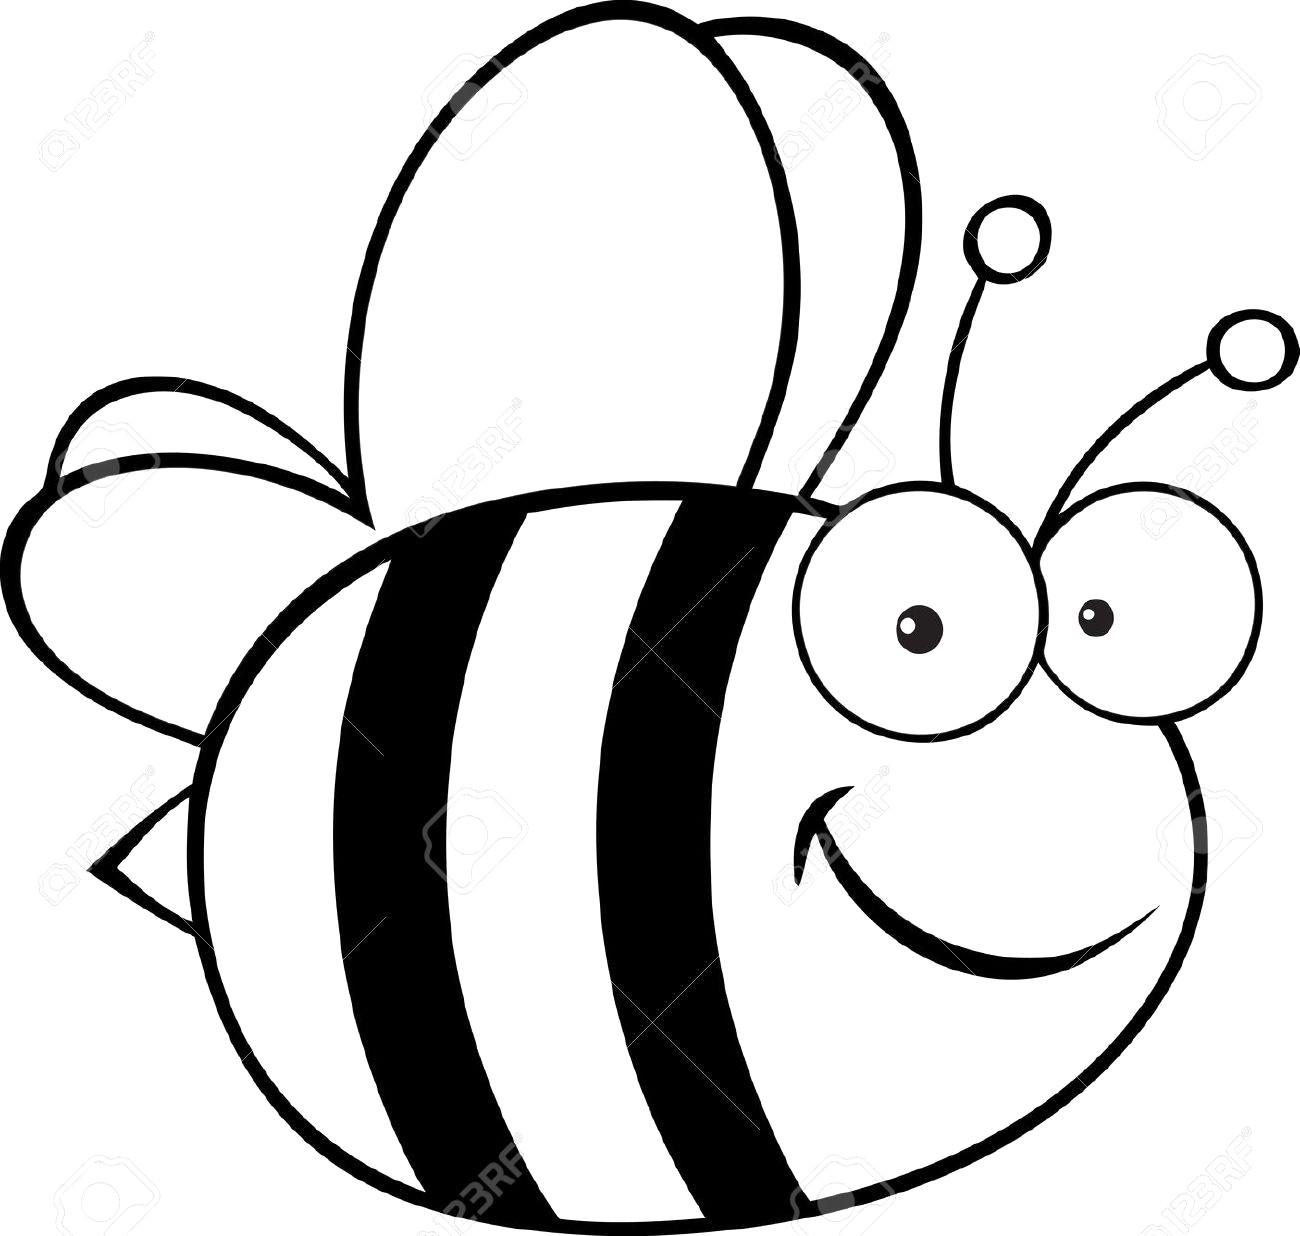 Free bee clipart black and white 4 » Clipart Station.